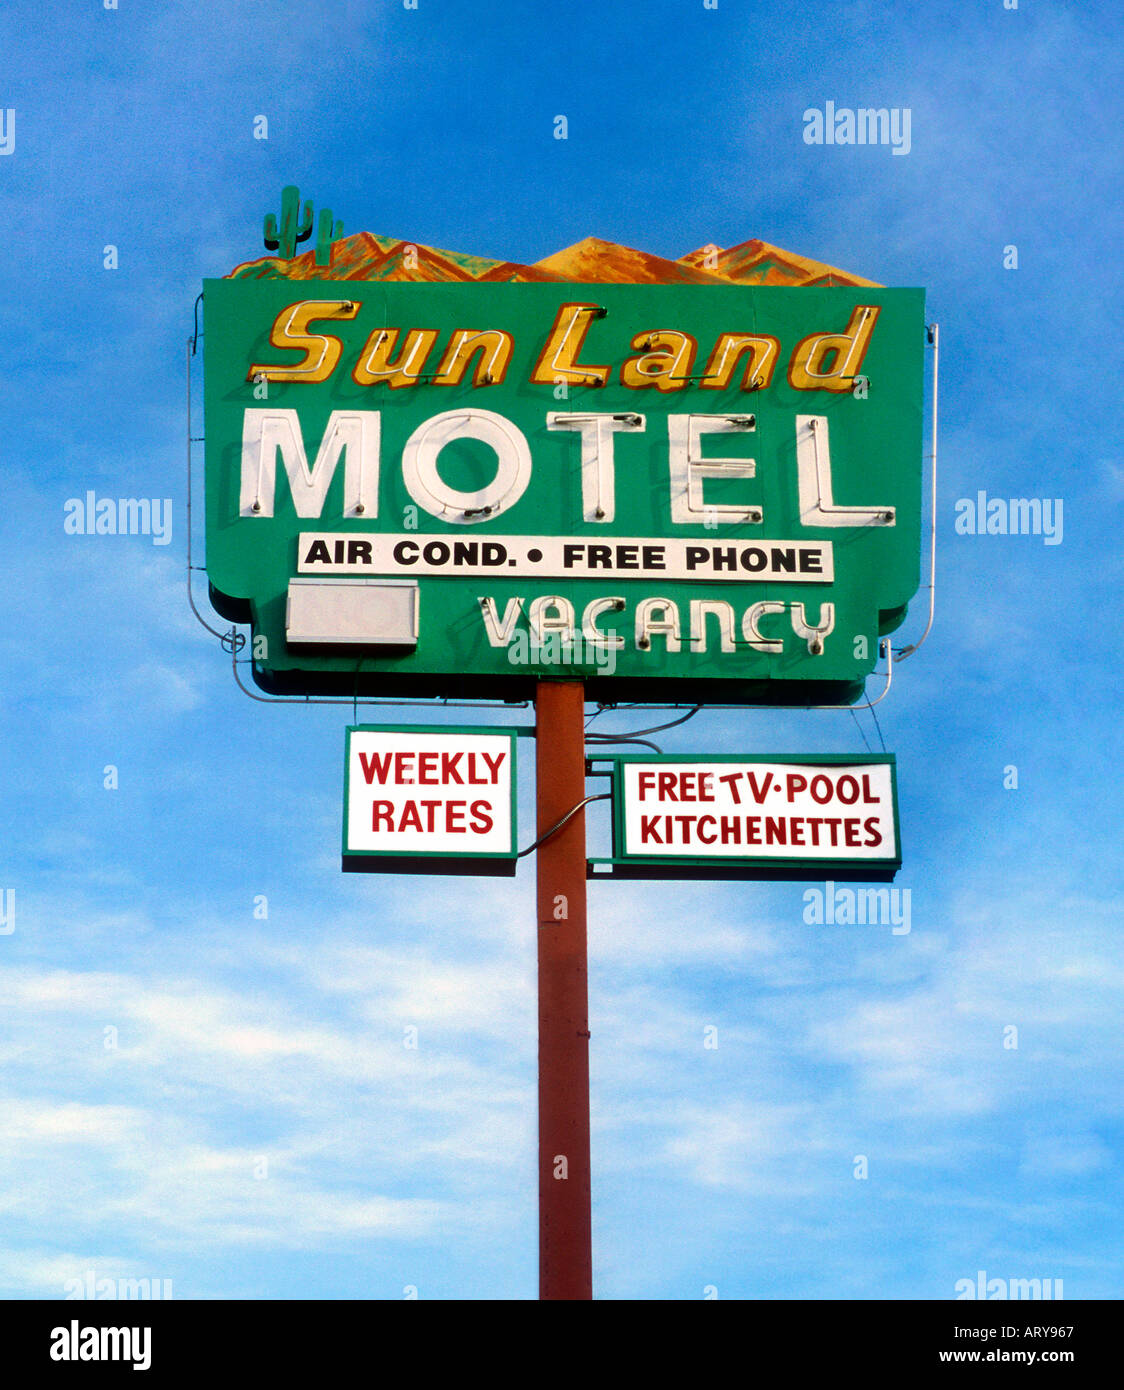 Sun Land Motel sign in Tucson Arizona Stock Photo: 3012966